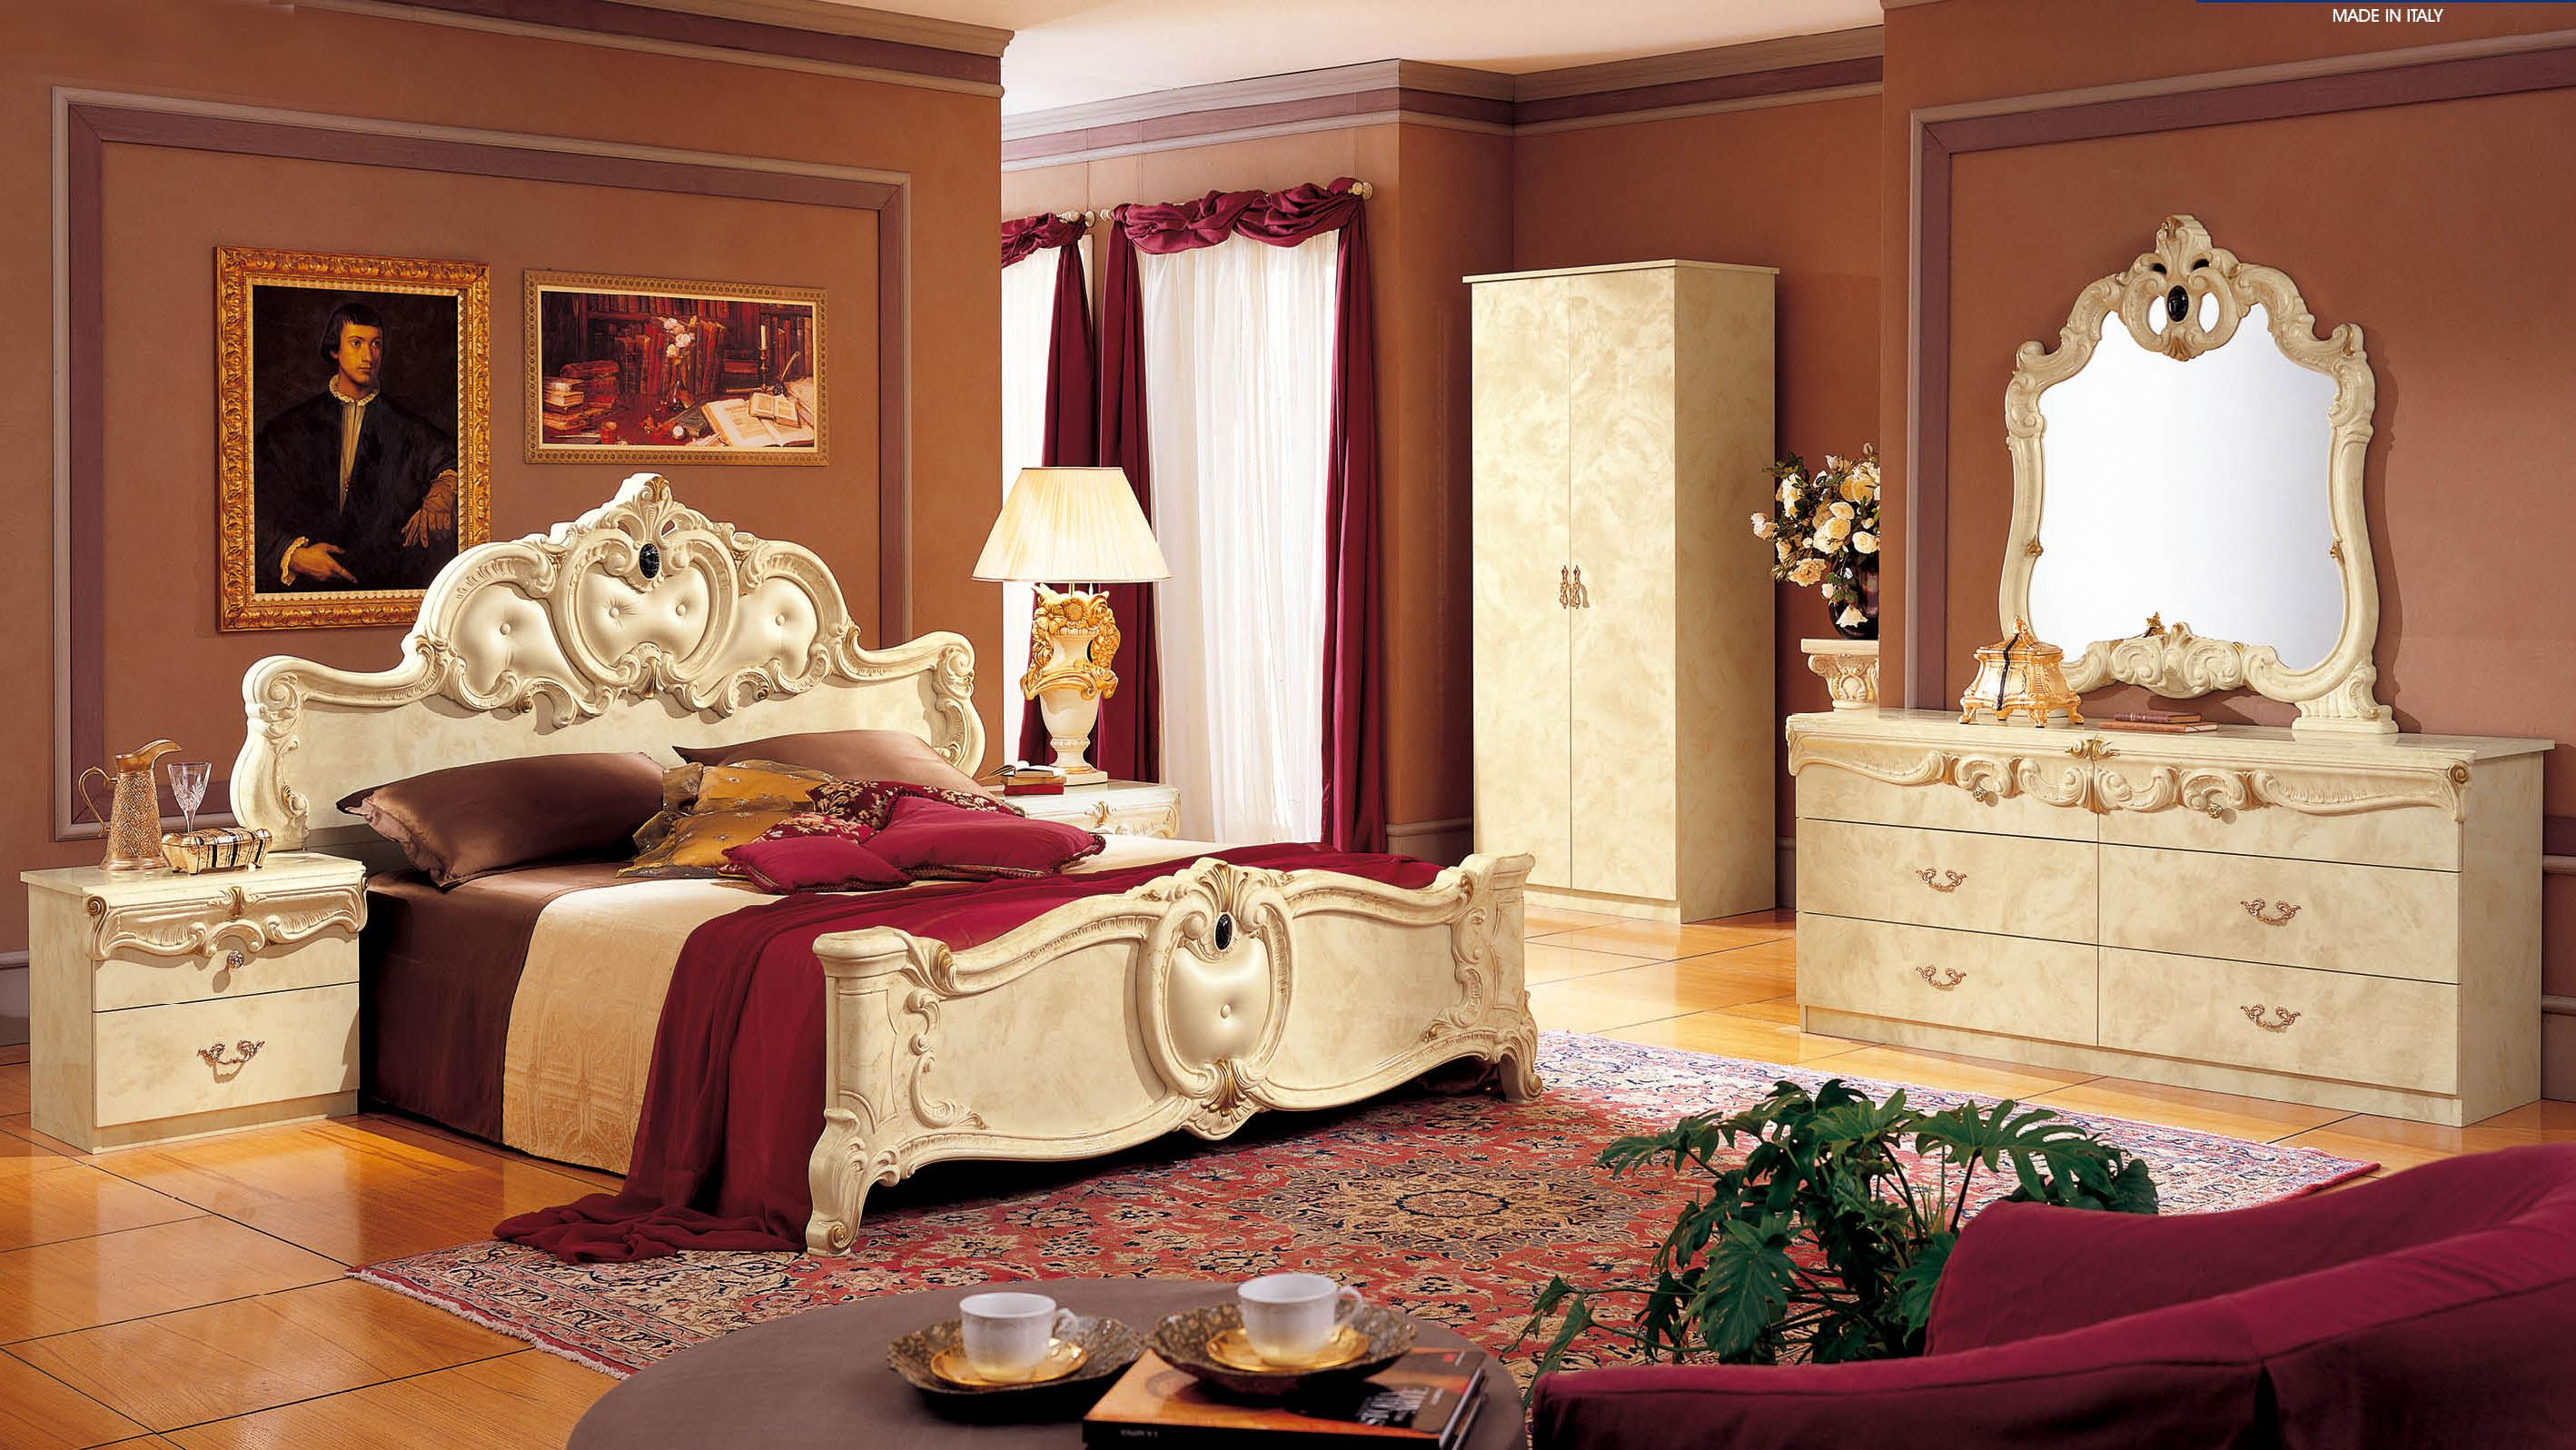 made in italy leather high end bedroom furniture glendale 11905 | esf barocco beroomset